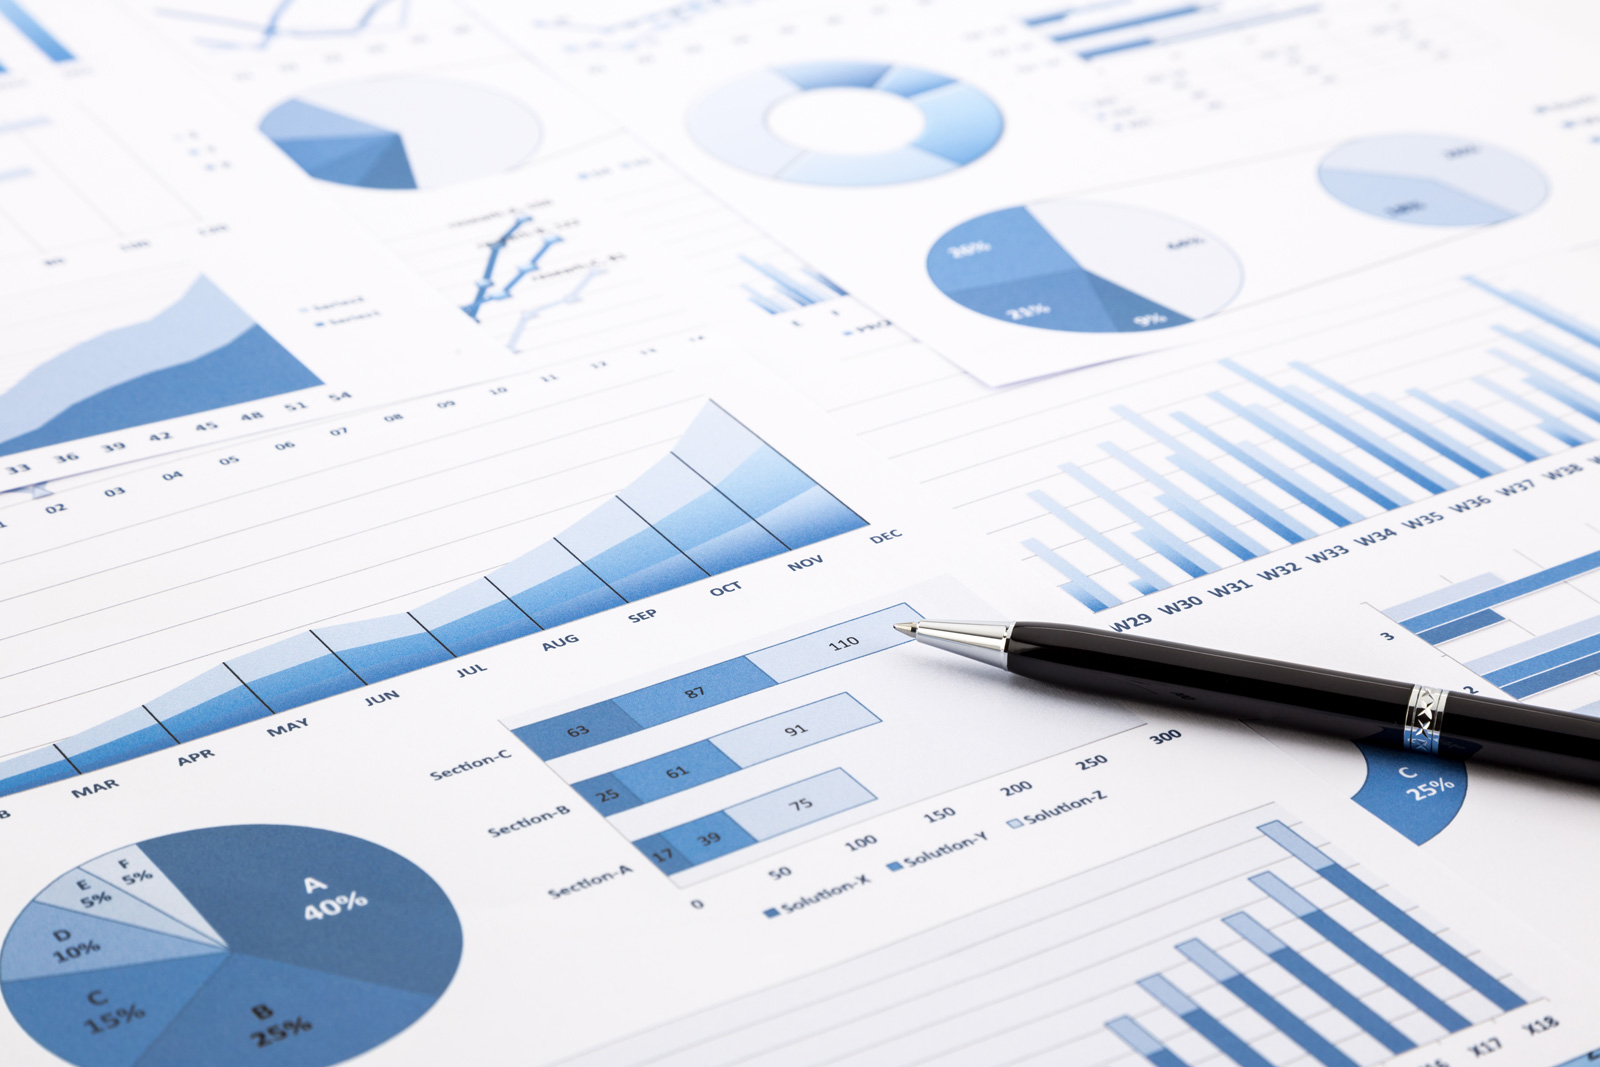 r&d corporation tax relief accountants offering low cost and exceptional service in the UK